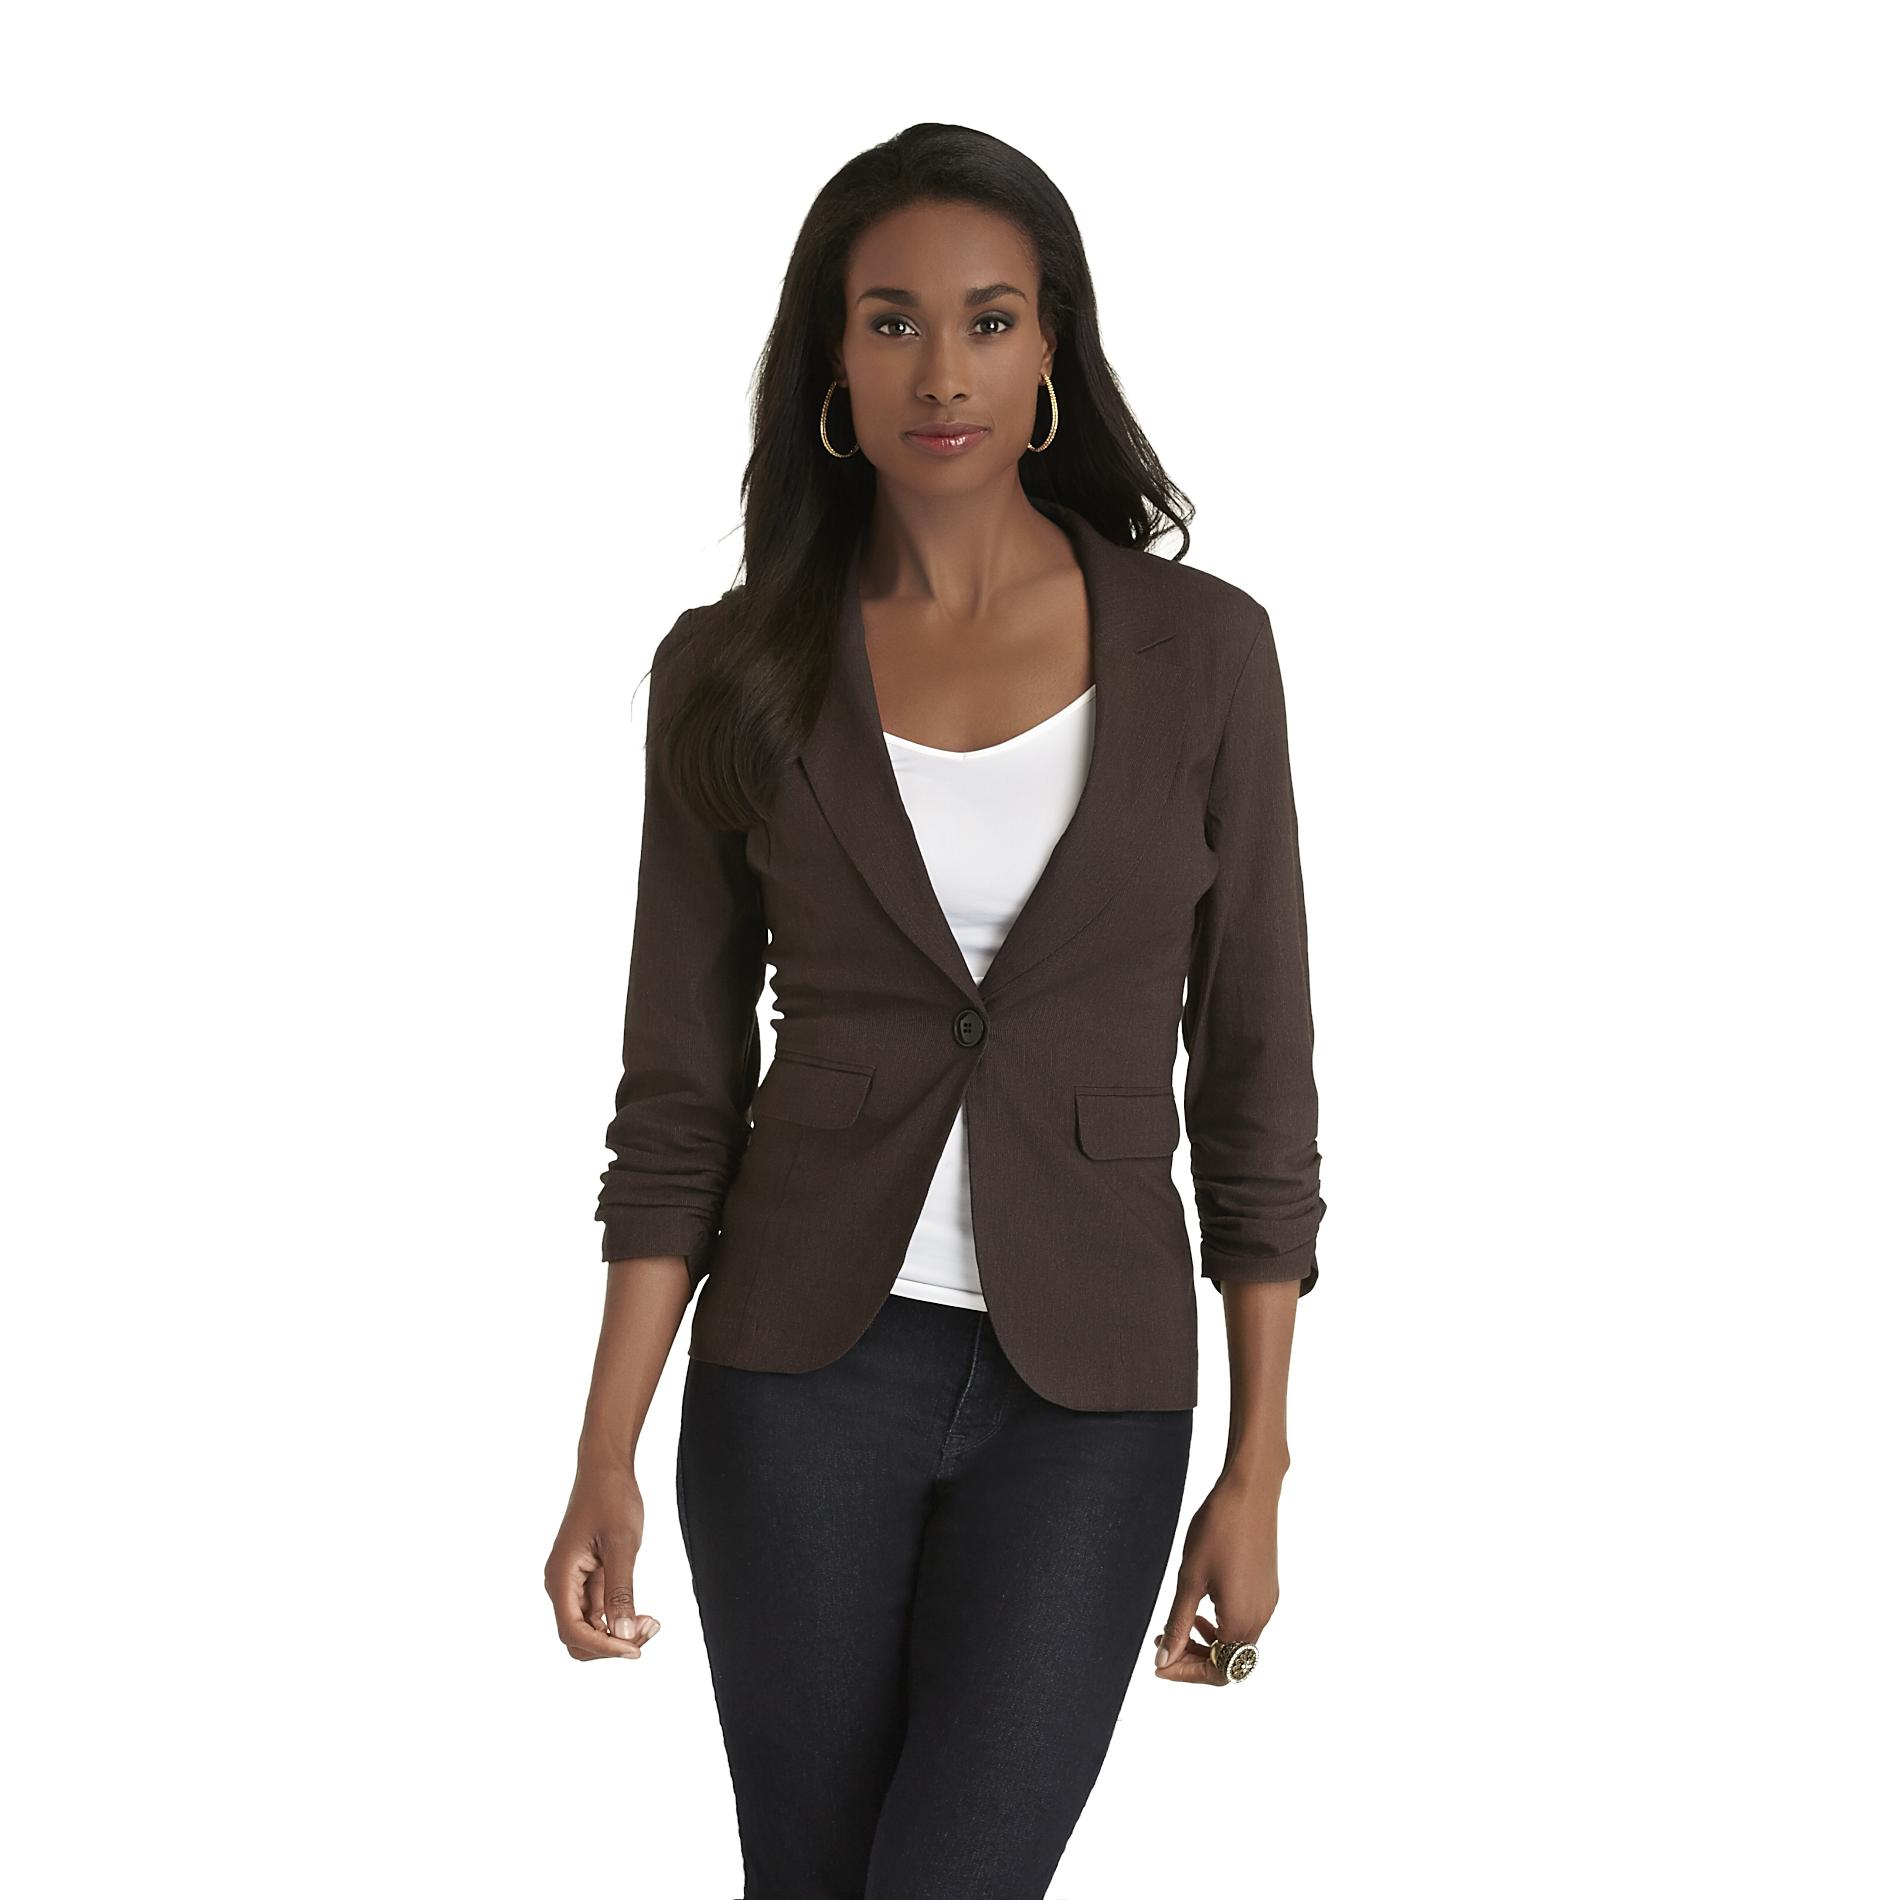 Metaphor Women's Blazer - Bird's-Eye at Sears.com